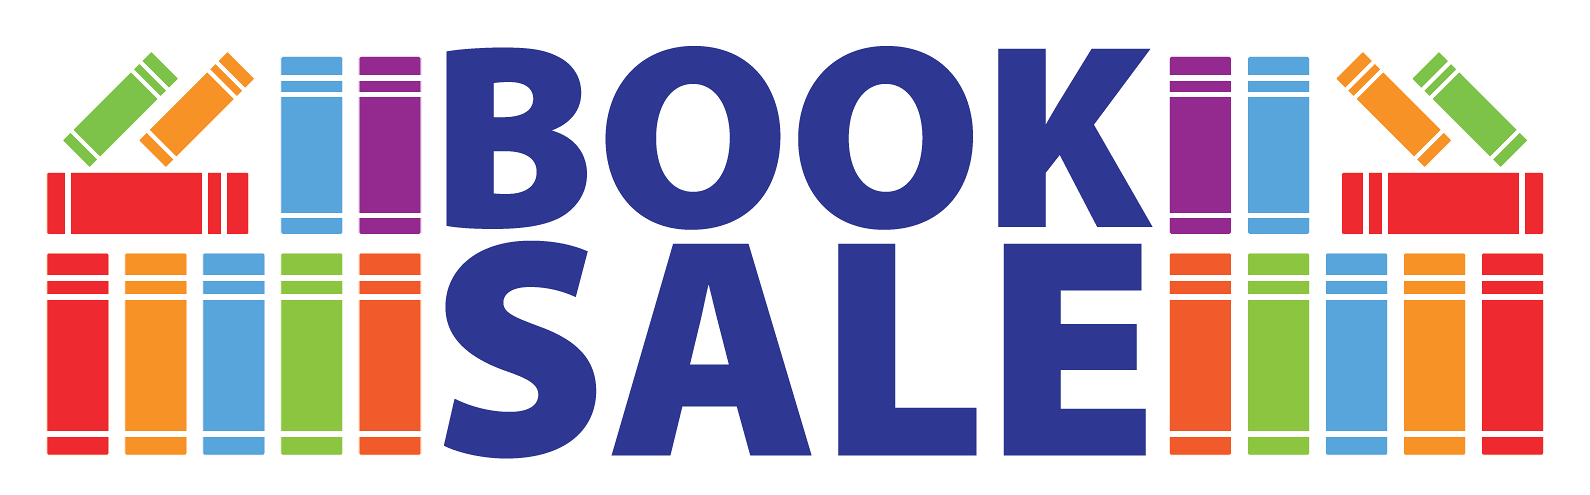 friends of the mercer island library book sale events king